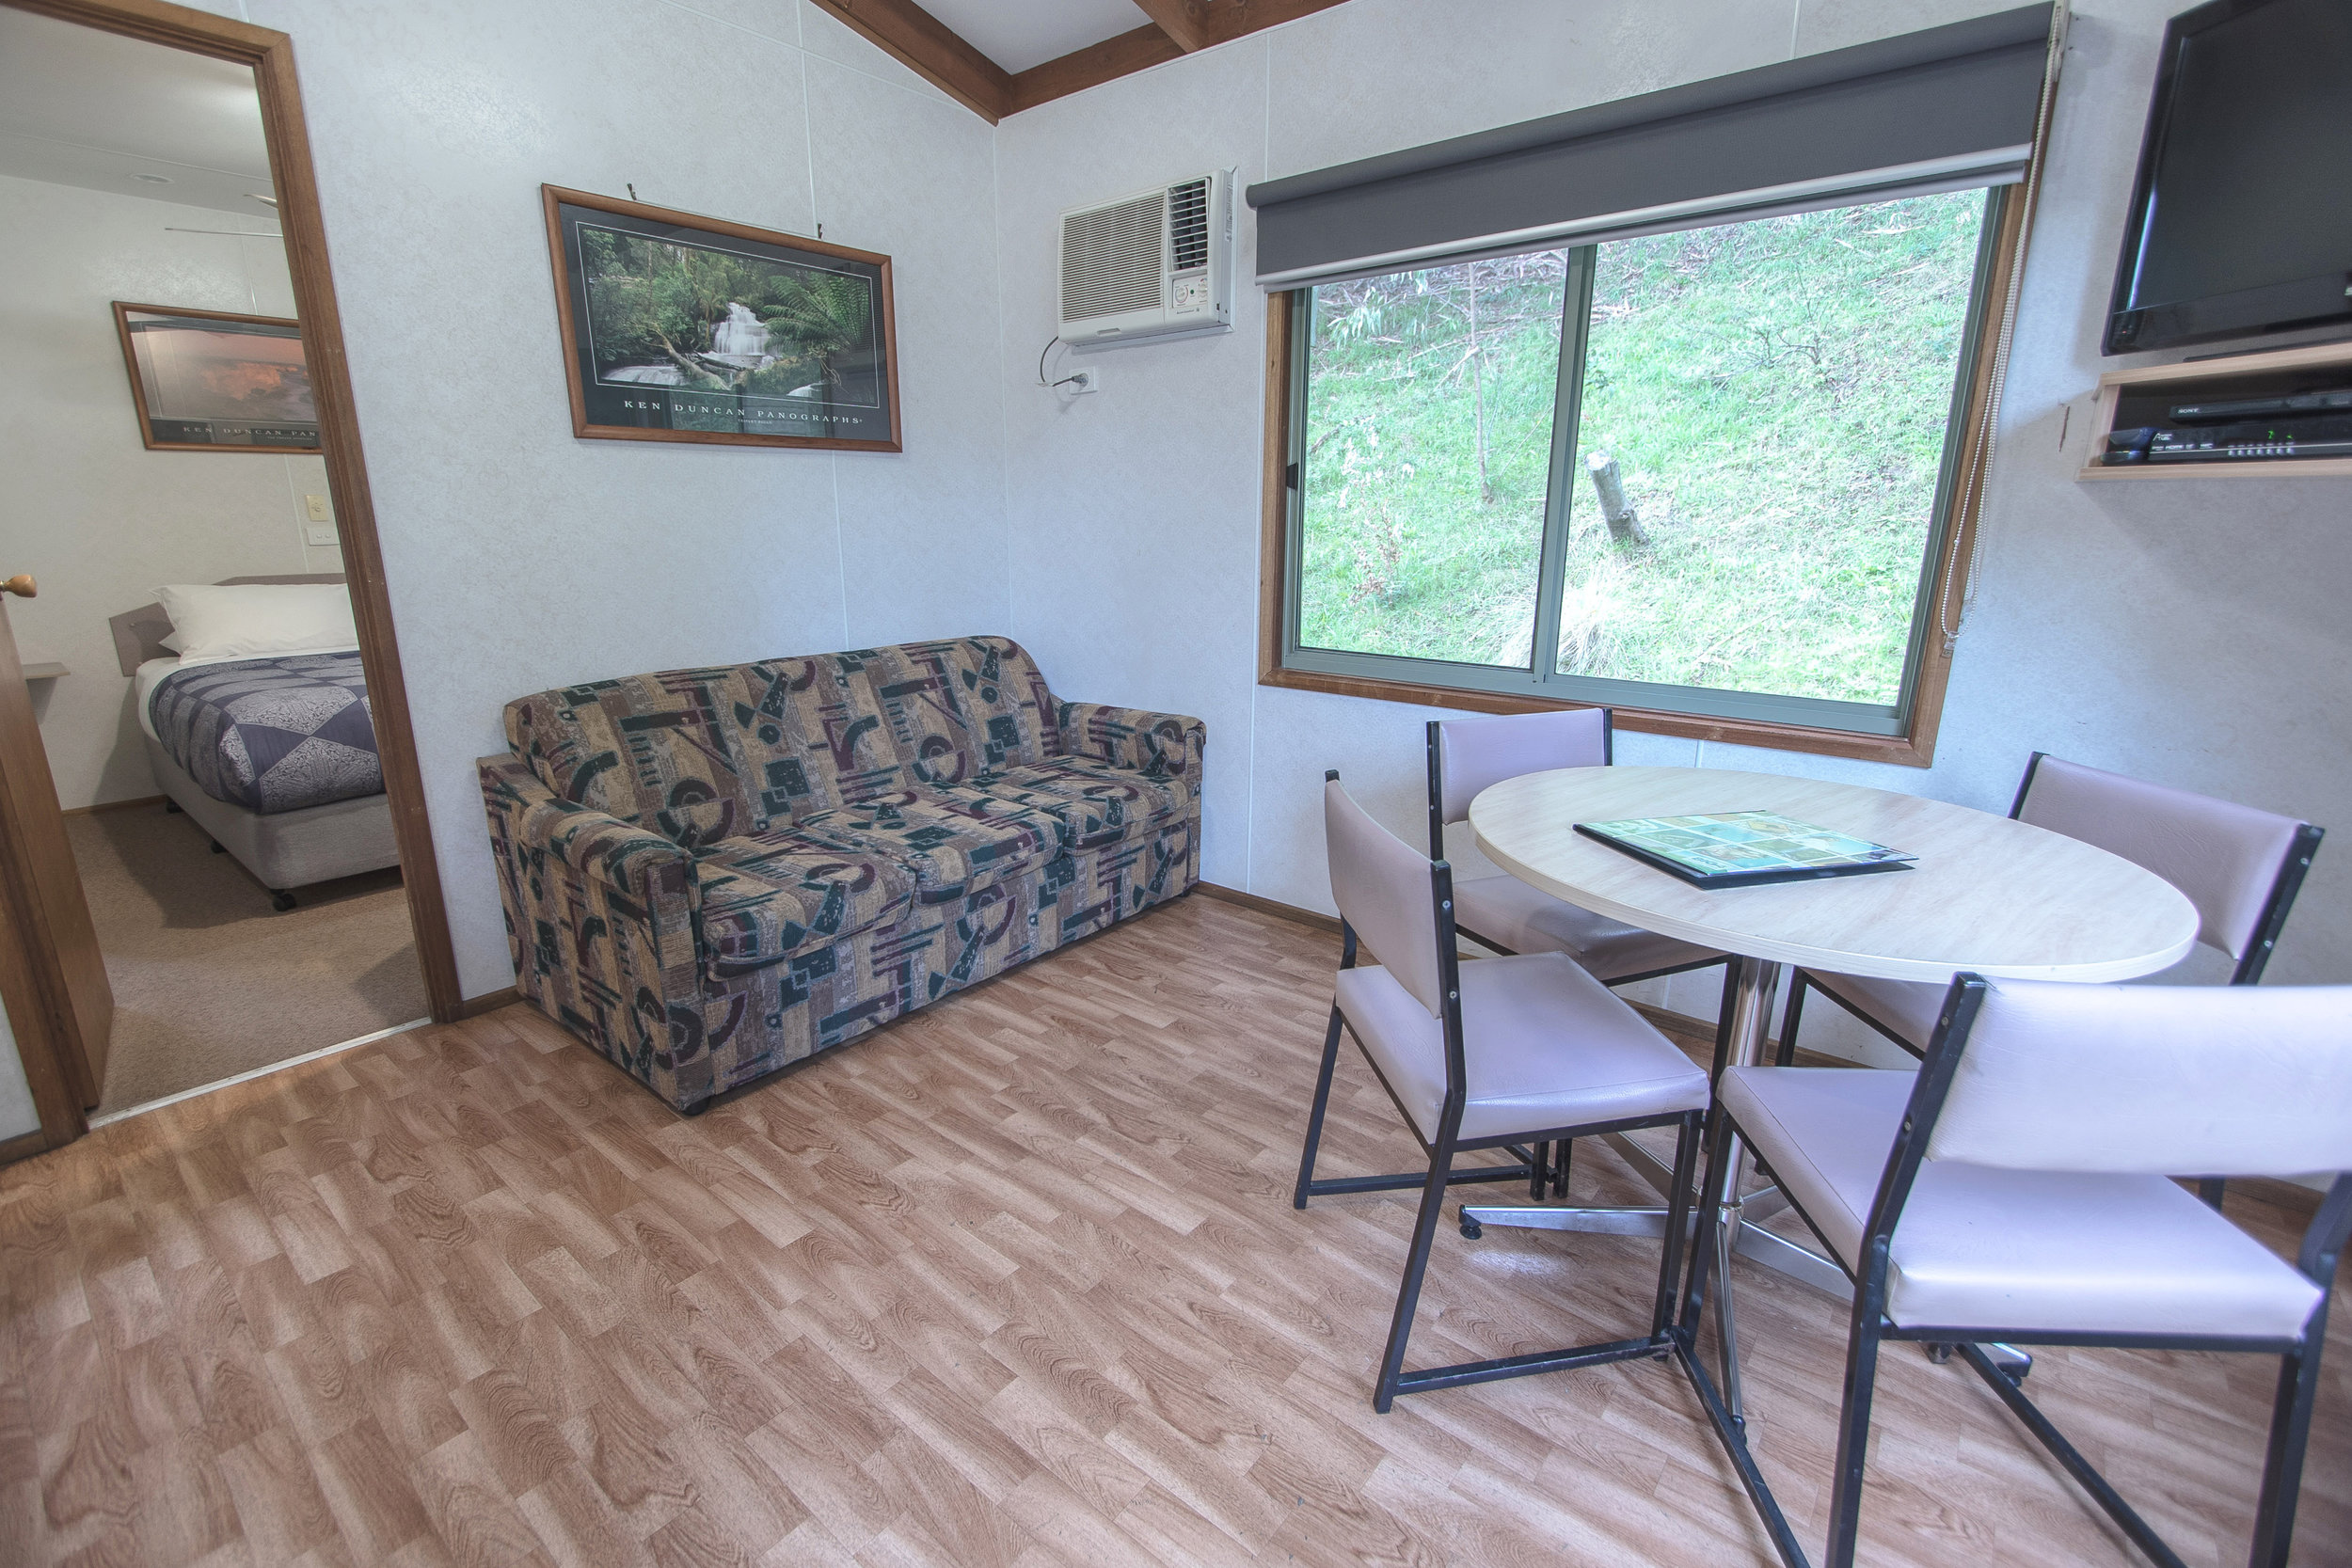 1-bed-holiday-unit-04.jpg